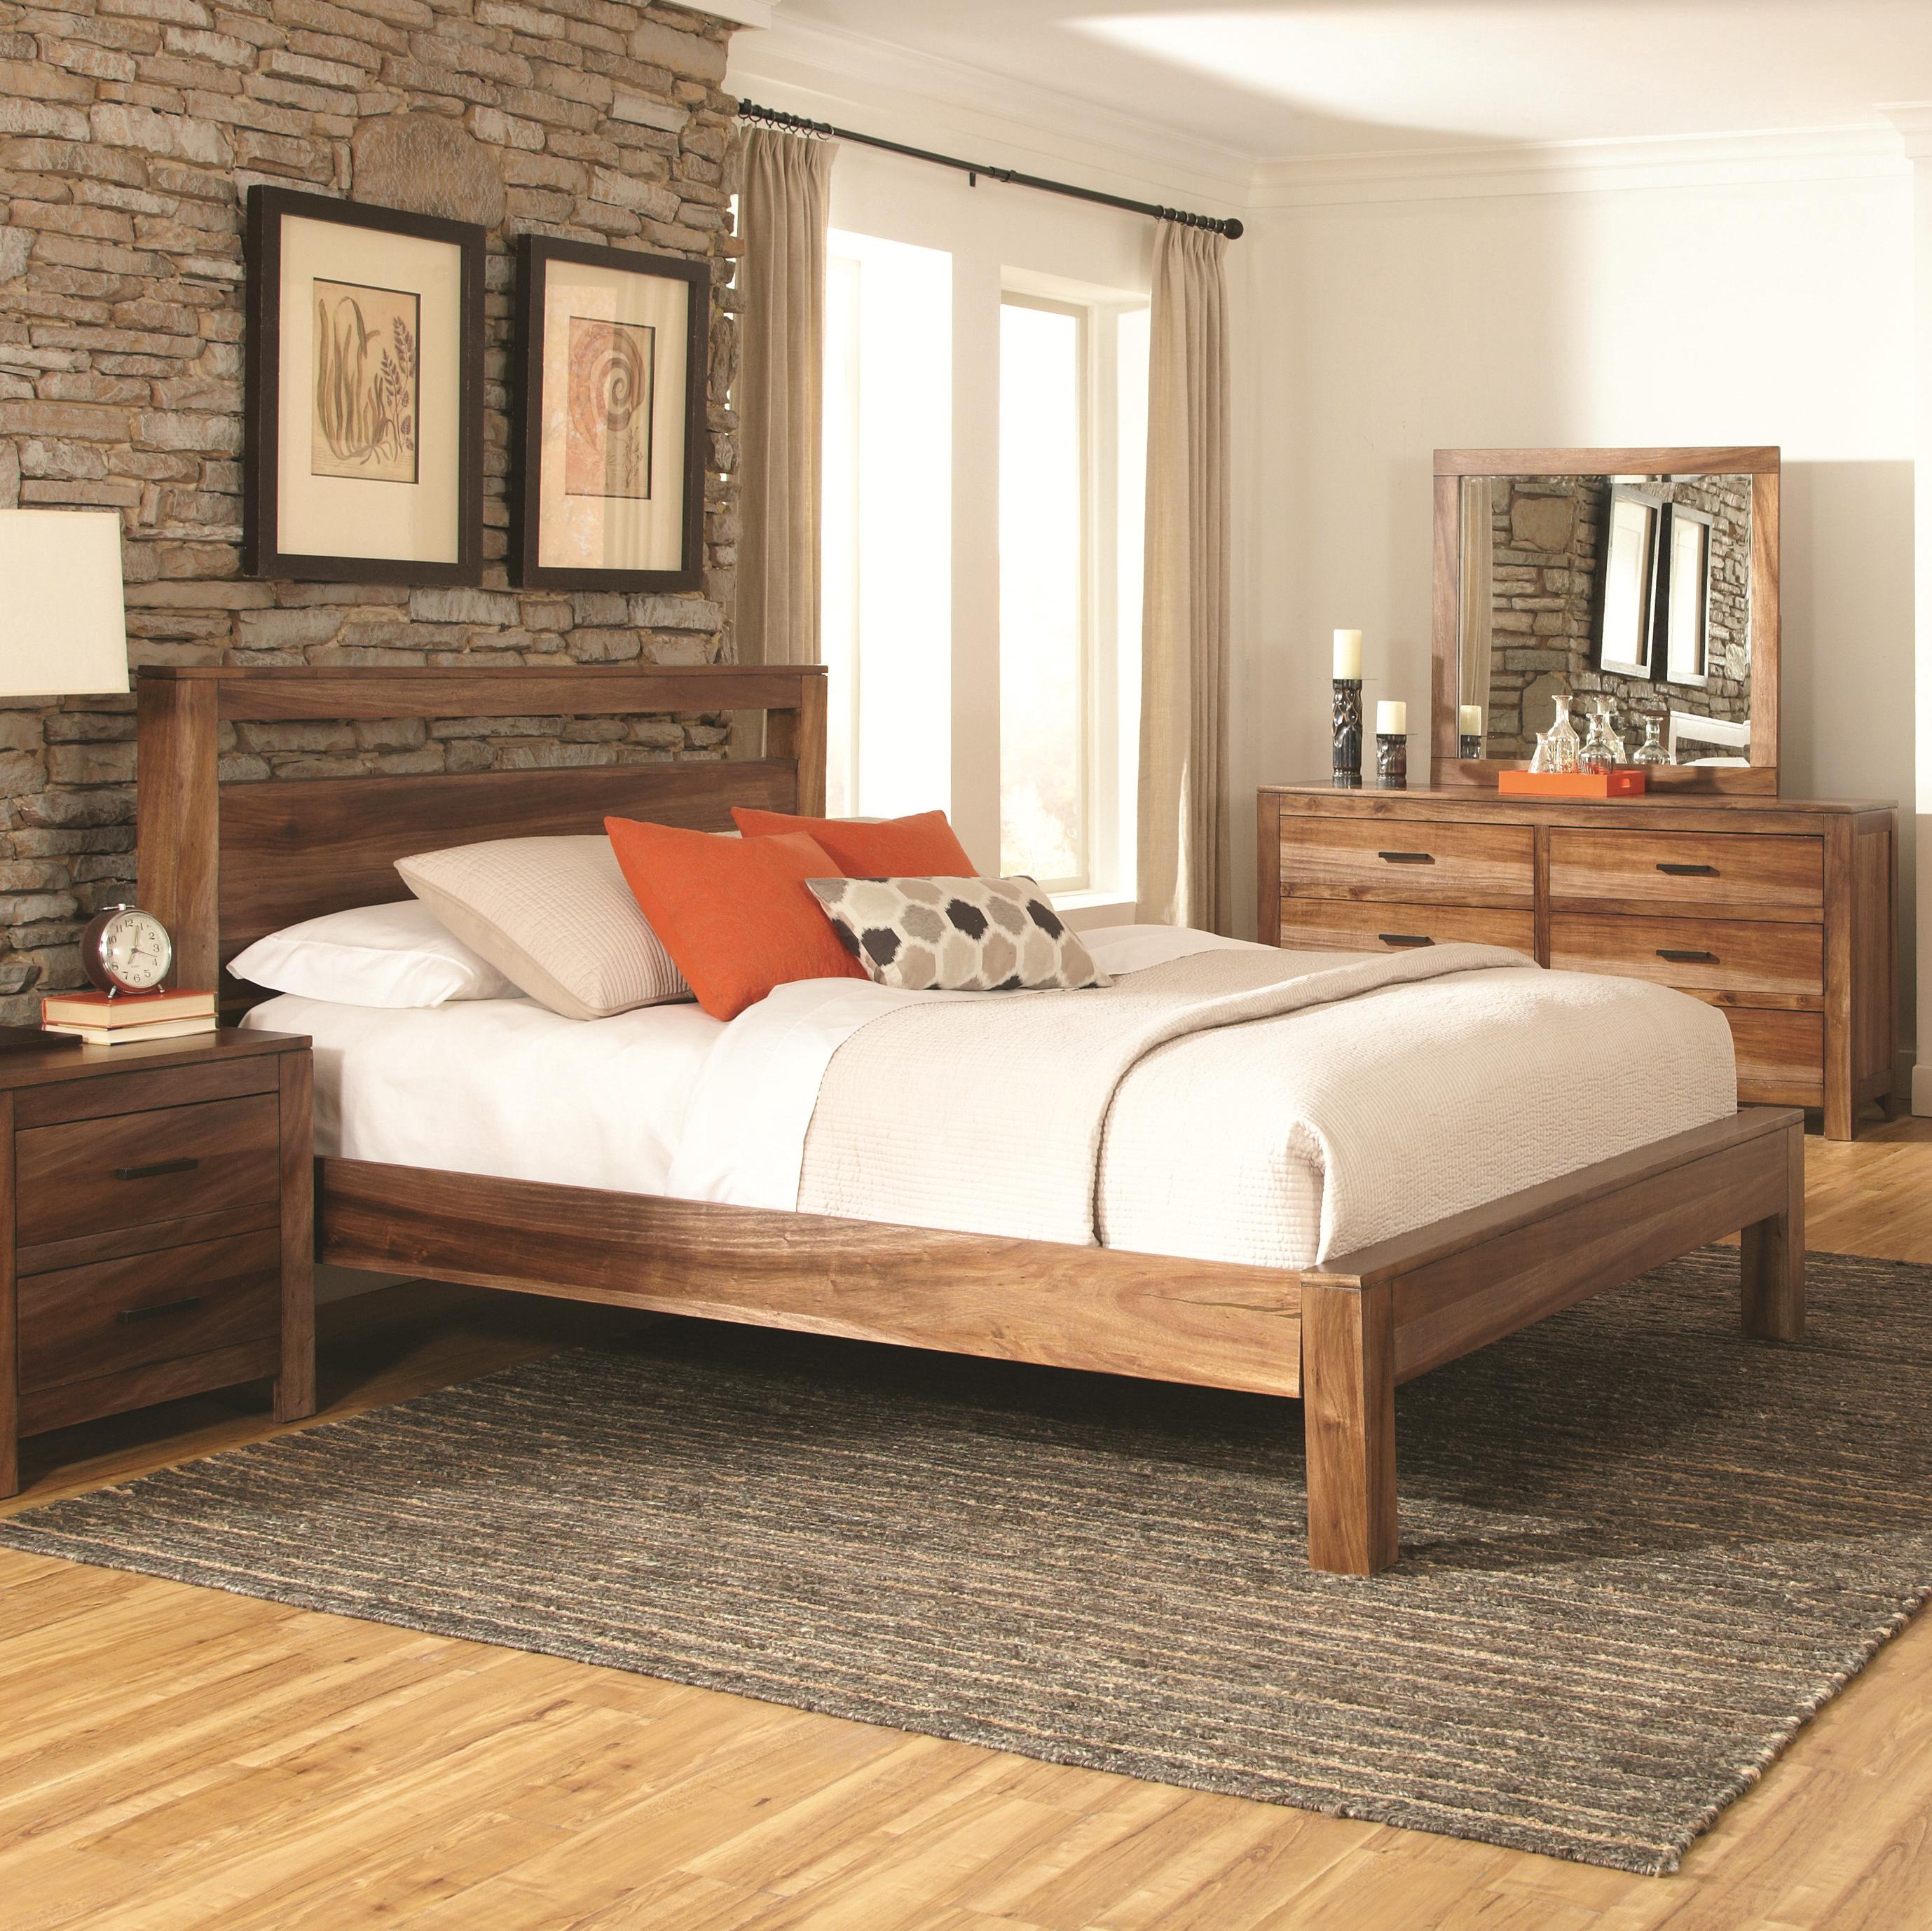 Queen 4 pc set, peyton (bed, dresser, nightstand, mirror)